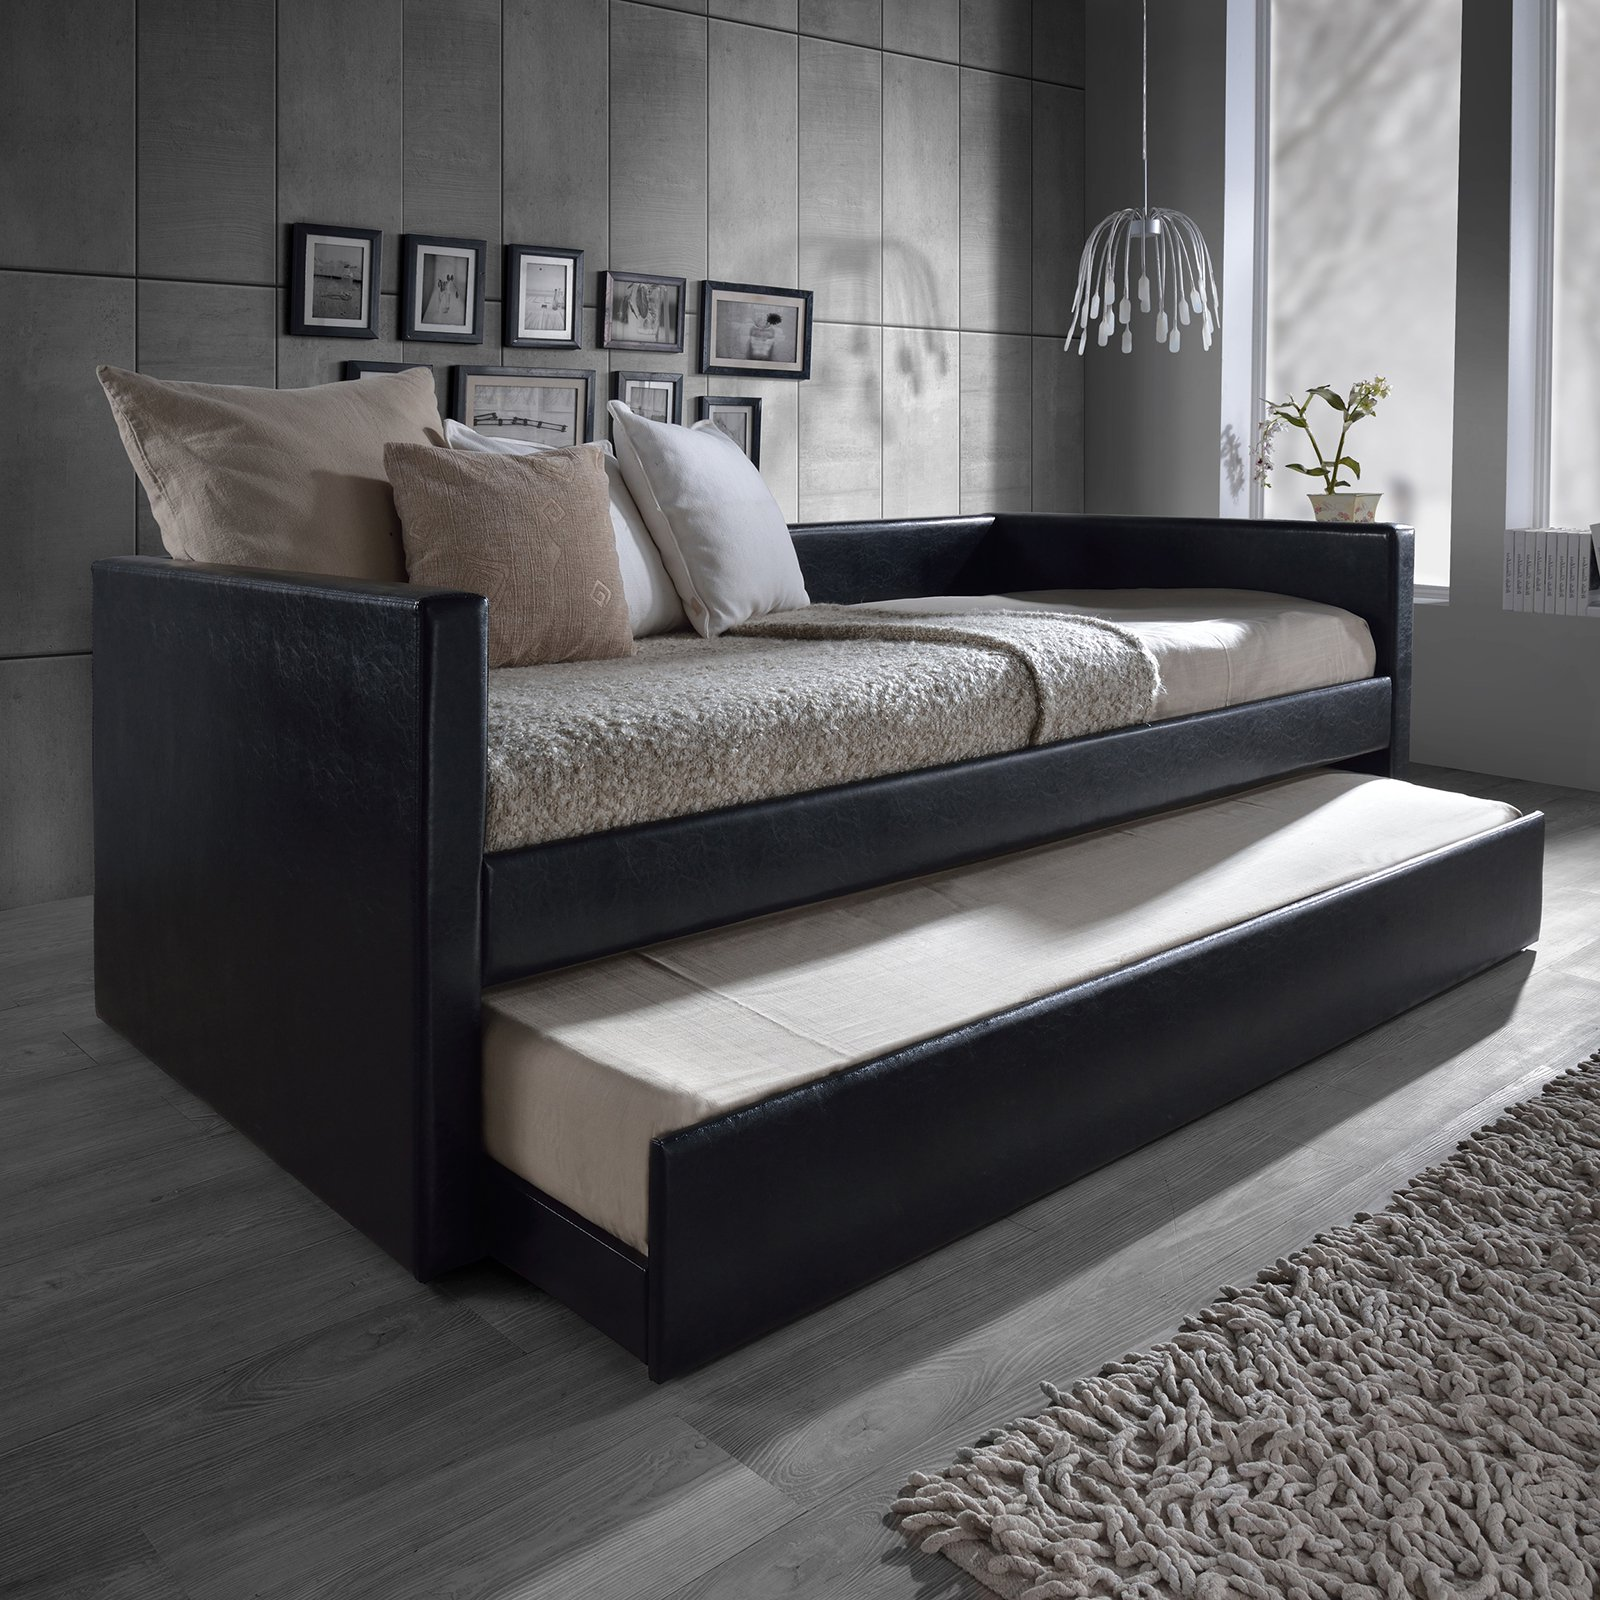 Risom Modern And Contemporary Faux Leather Upholstered Daybed Bed Frame With Trundle - Twin - Black - Baxton Studio